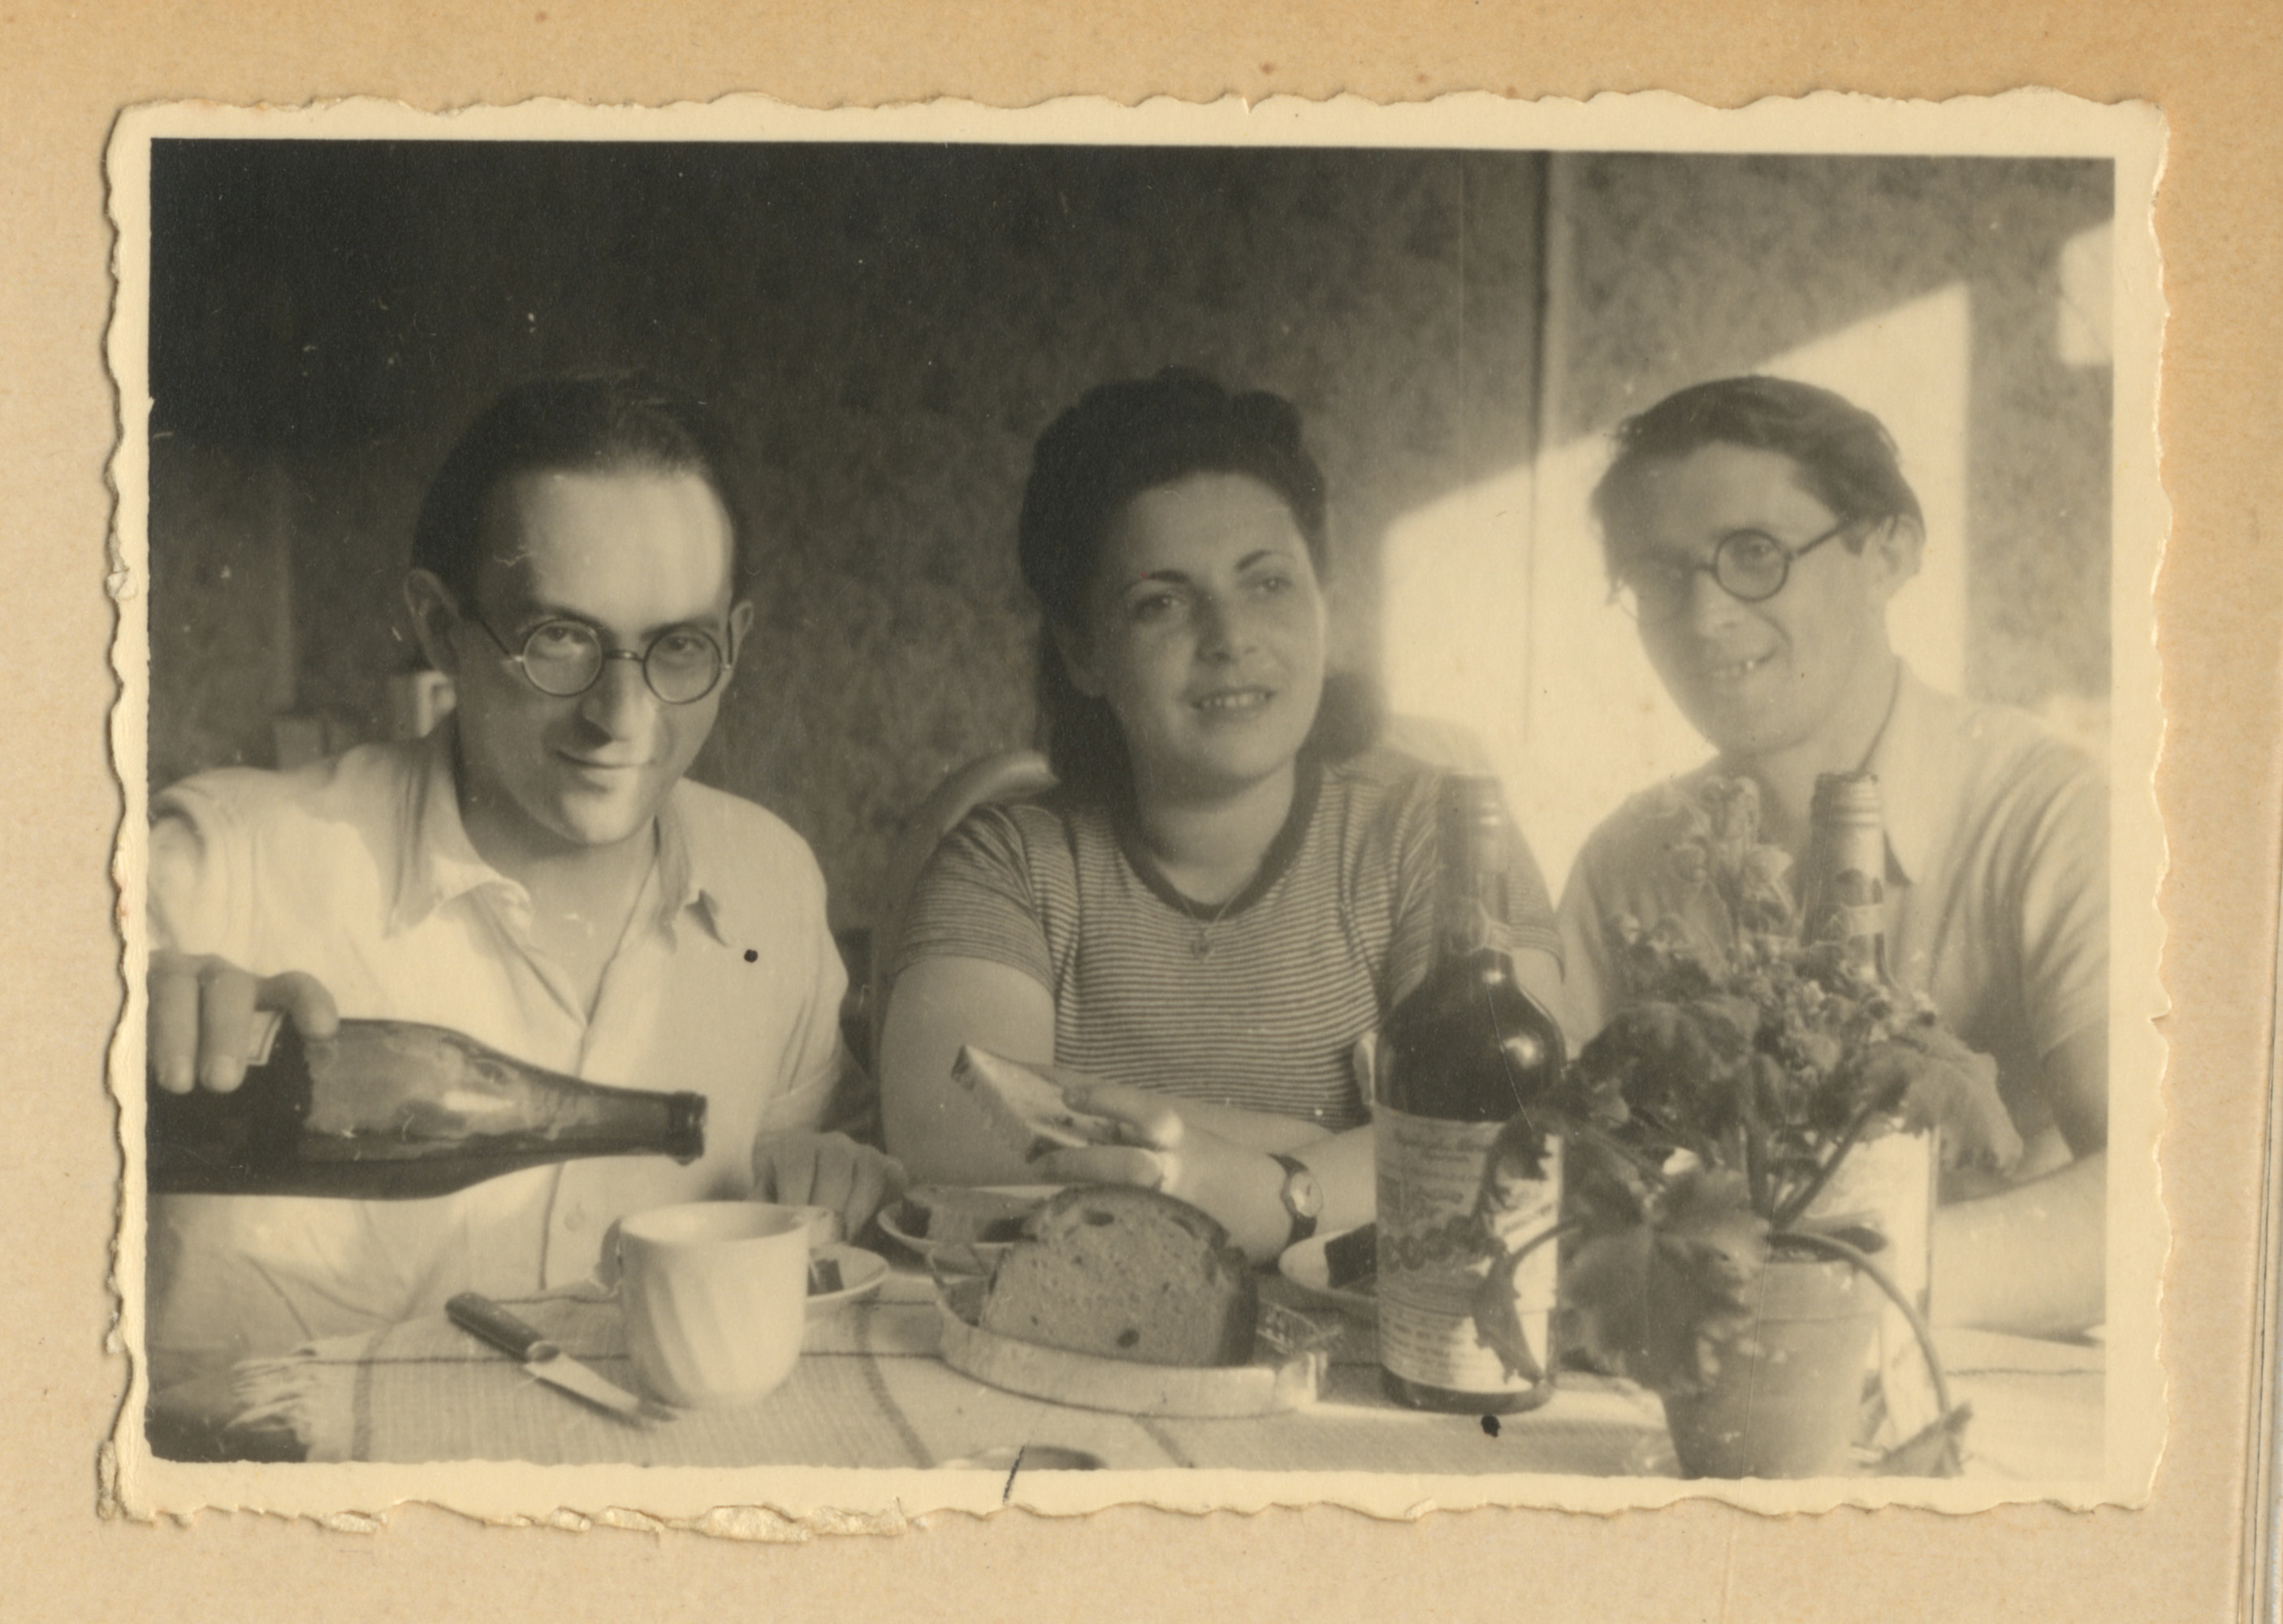 Jewish displaced persons, possibly in Lodz.  Among those pictured is Jeannette Strainsky Spiro (center).